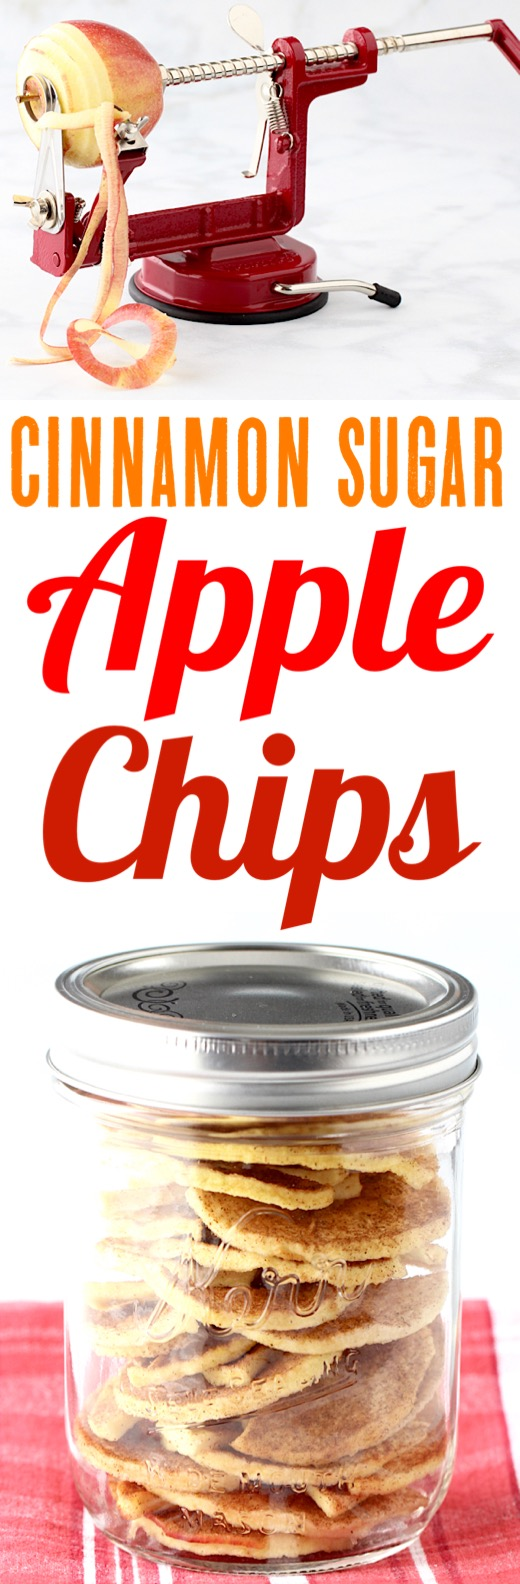 Apple Chips Recipe Easy Healthy Snack Made in your Dehydrator